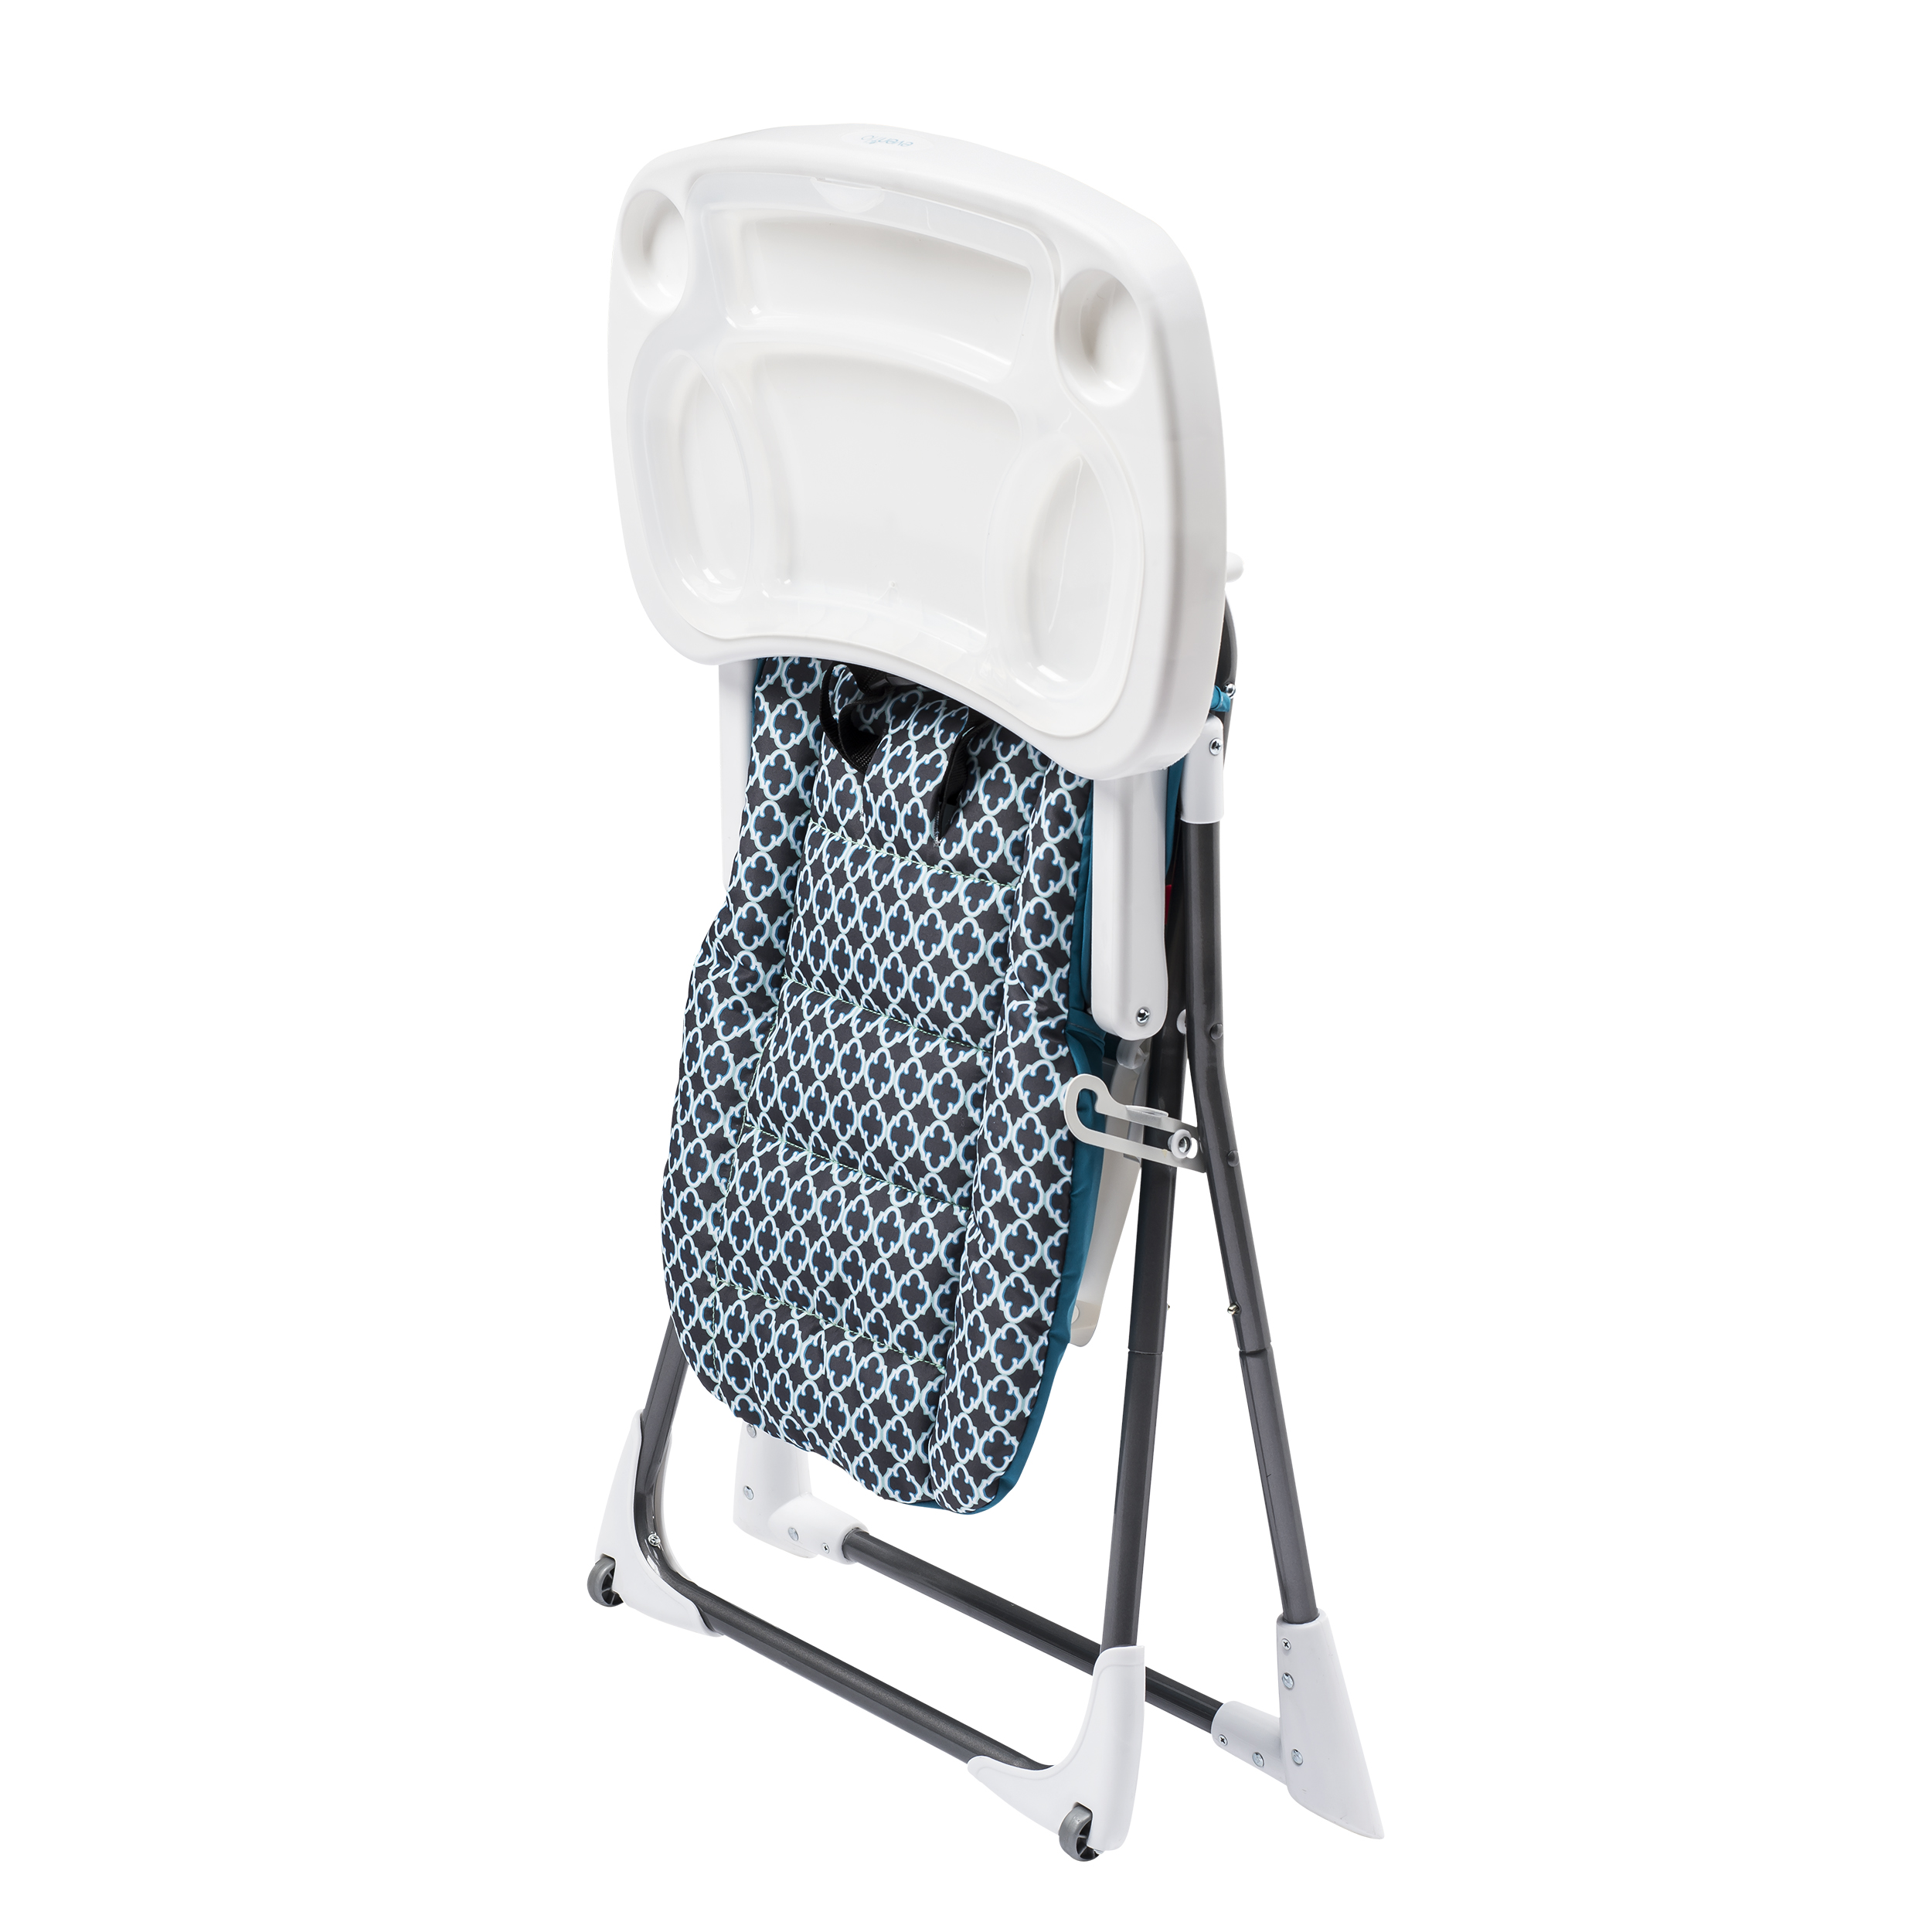 evenflo easy fold high chair foldable lawn chairs compact monaco baby gear alternate image